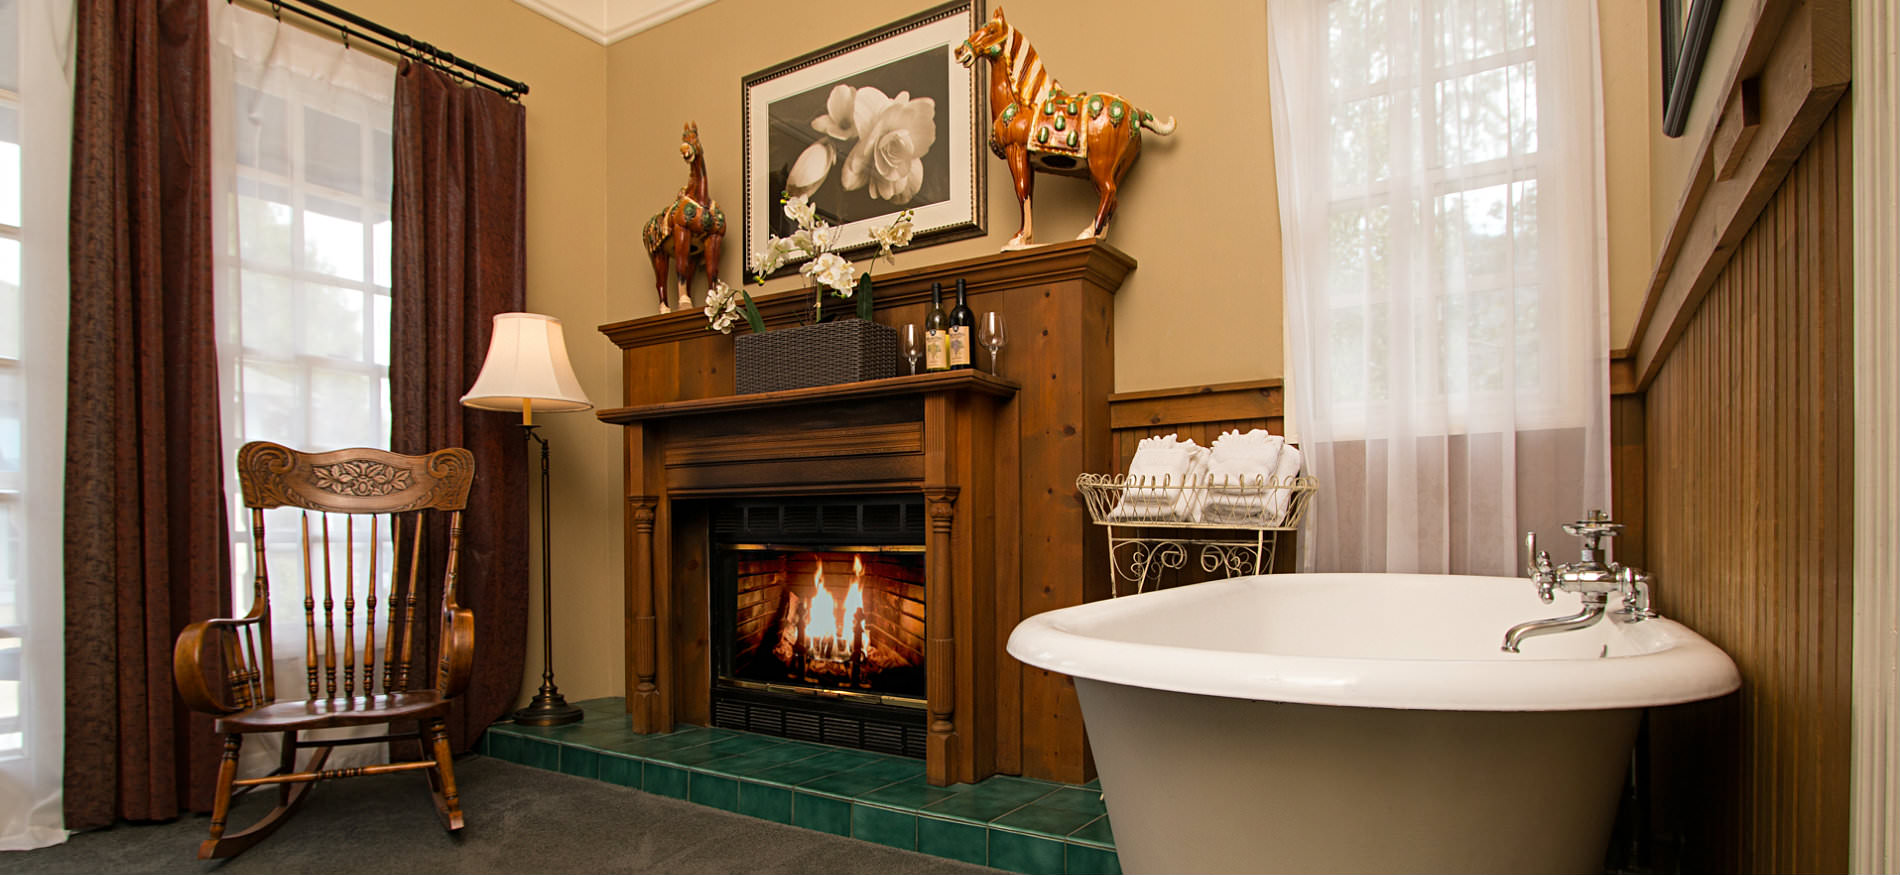 Tan room and fireplace with wood mantle surround, a wood rocking chair, and white freestanding tub